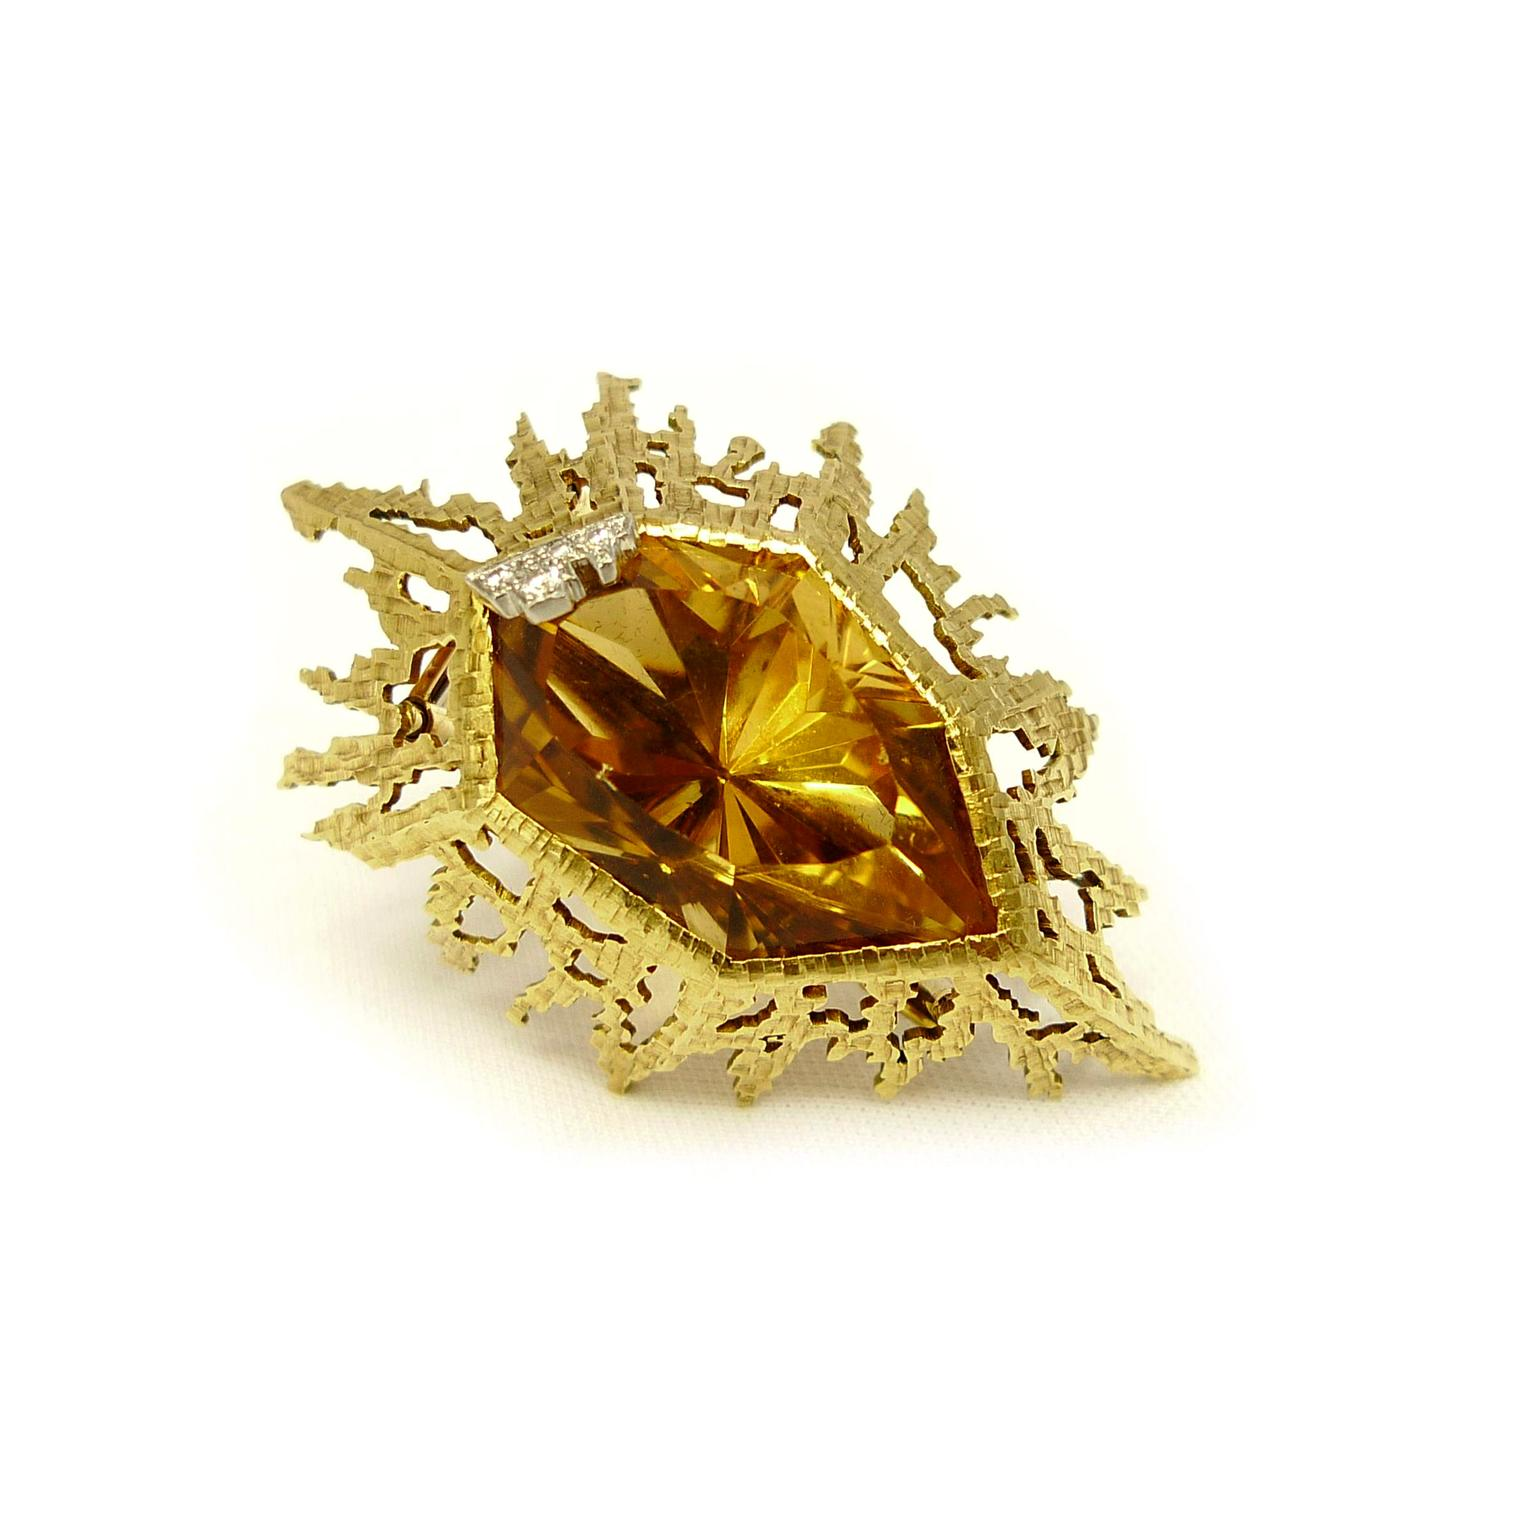 Andrew grima gold and Brazilian citrine brooch